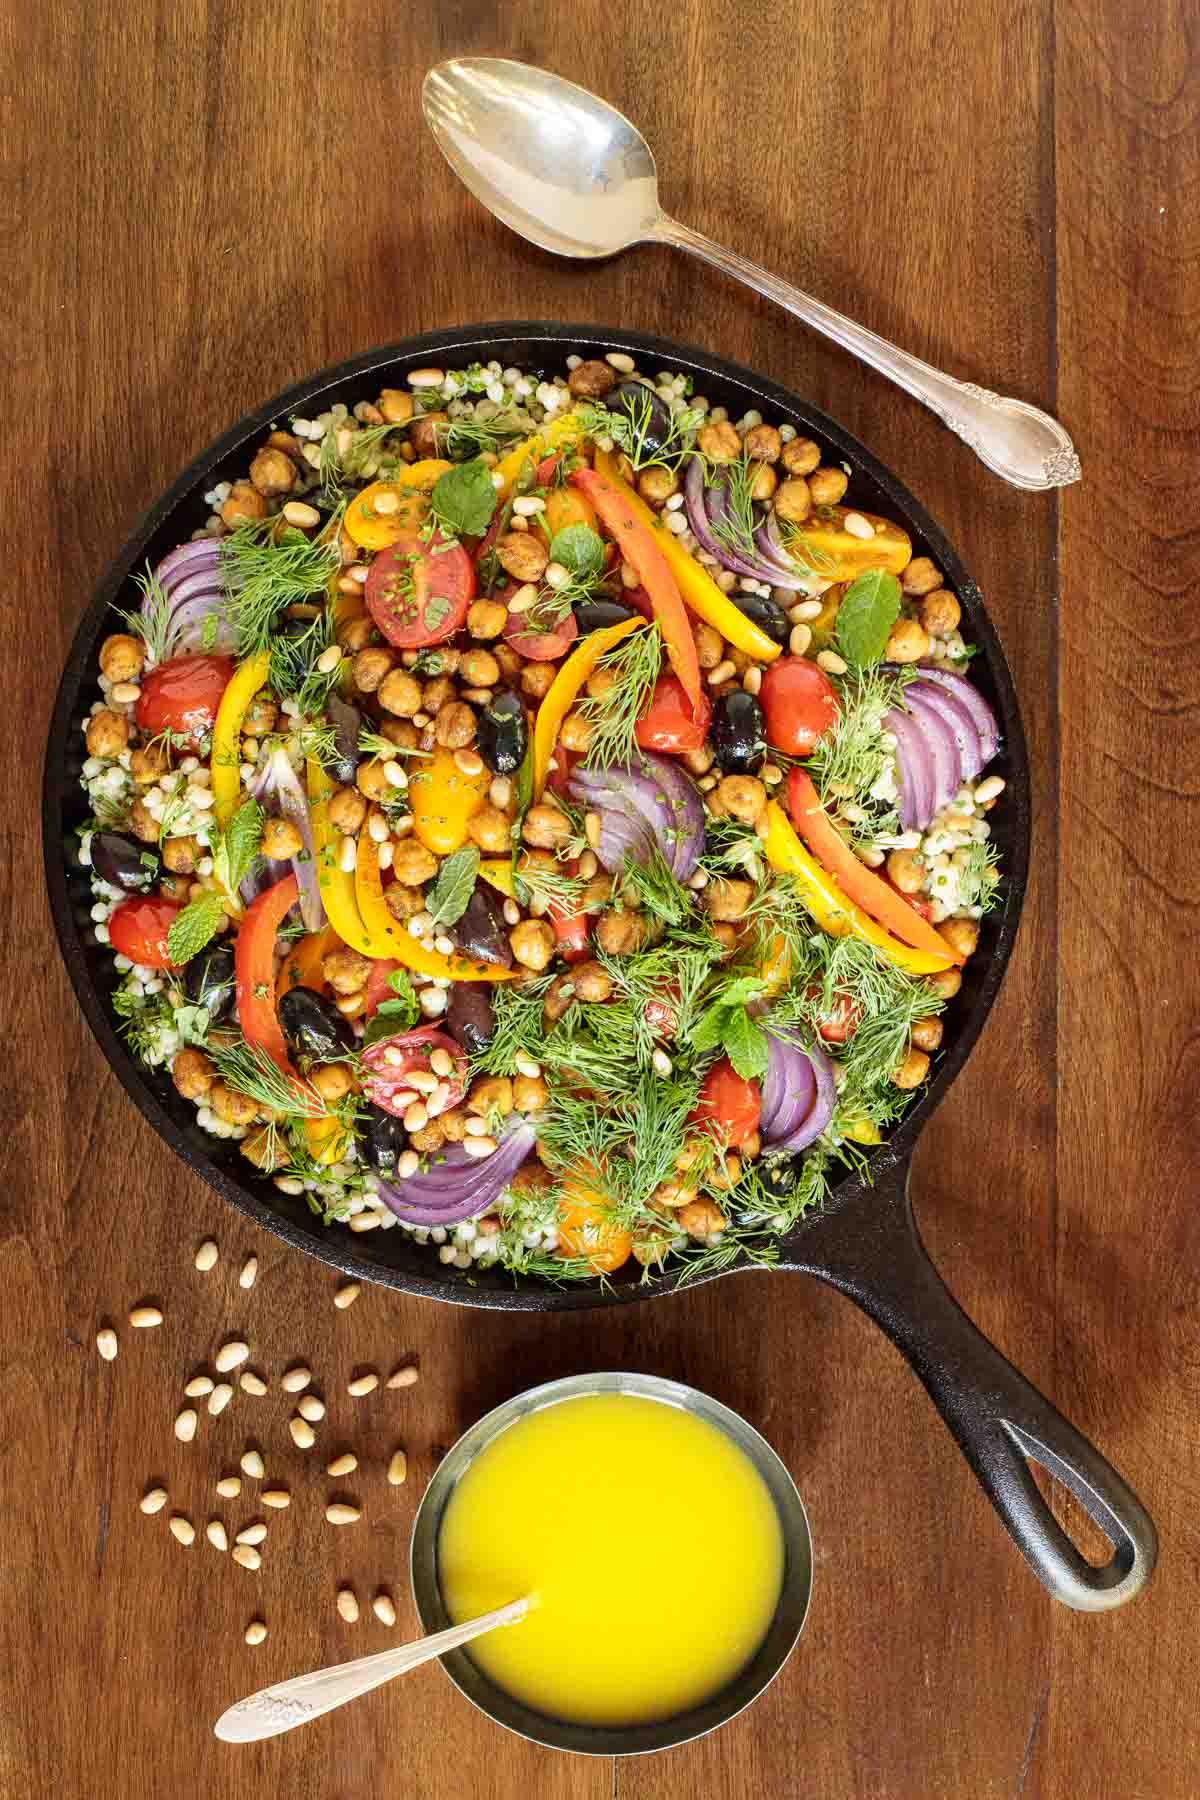 Overhead vertical photo of a Roasted Veggie and Crispy Chickpea Salad in a black cast iron skillet on a wood table.